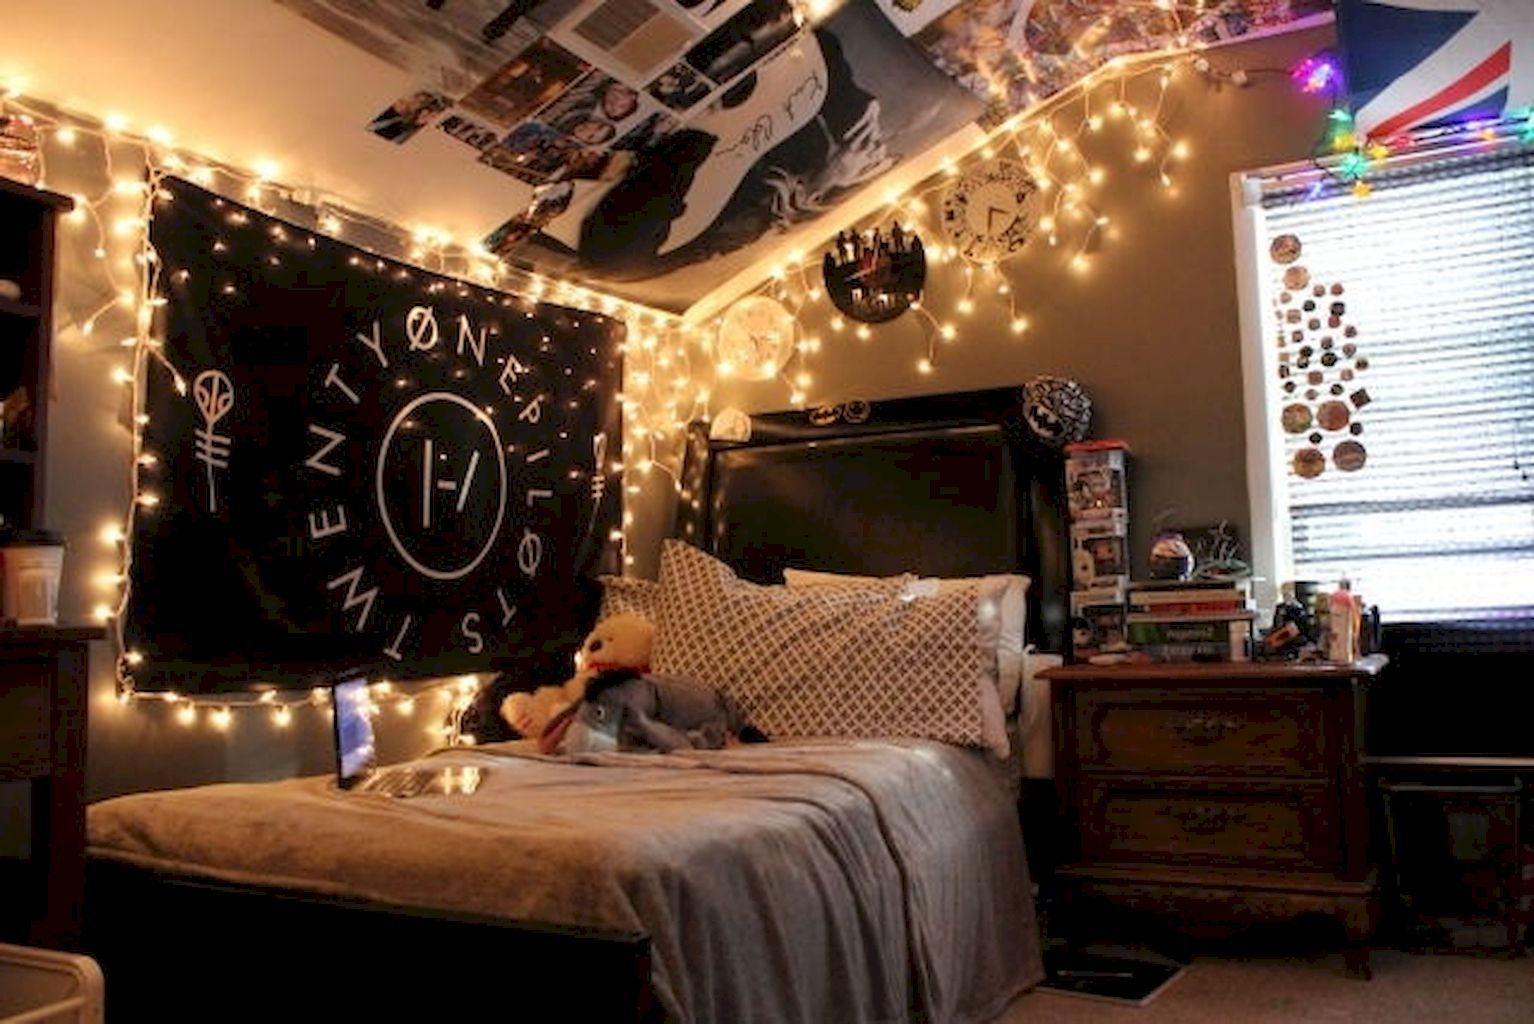 Incroyable 66 Cute DIY Hipster Bedroom Decorations Ideas